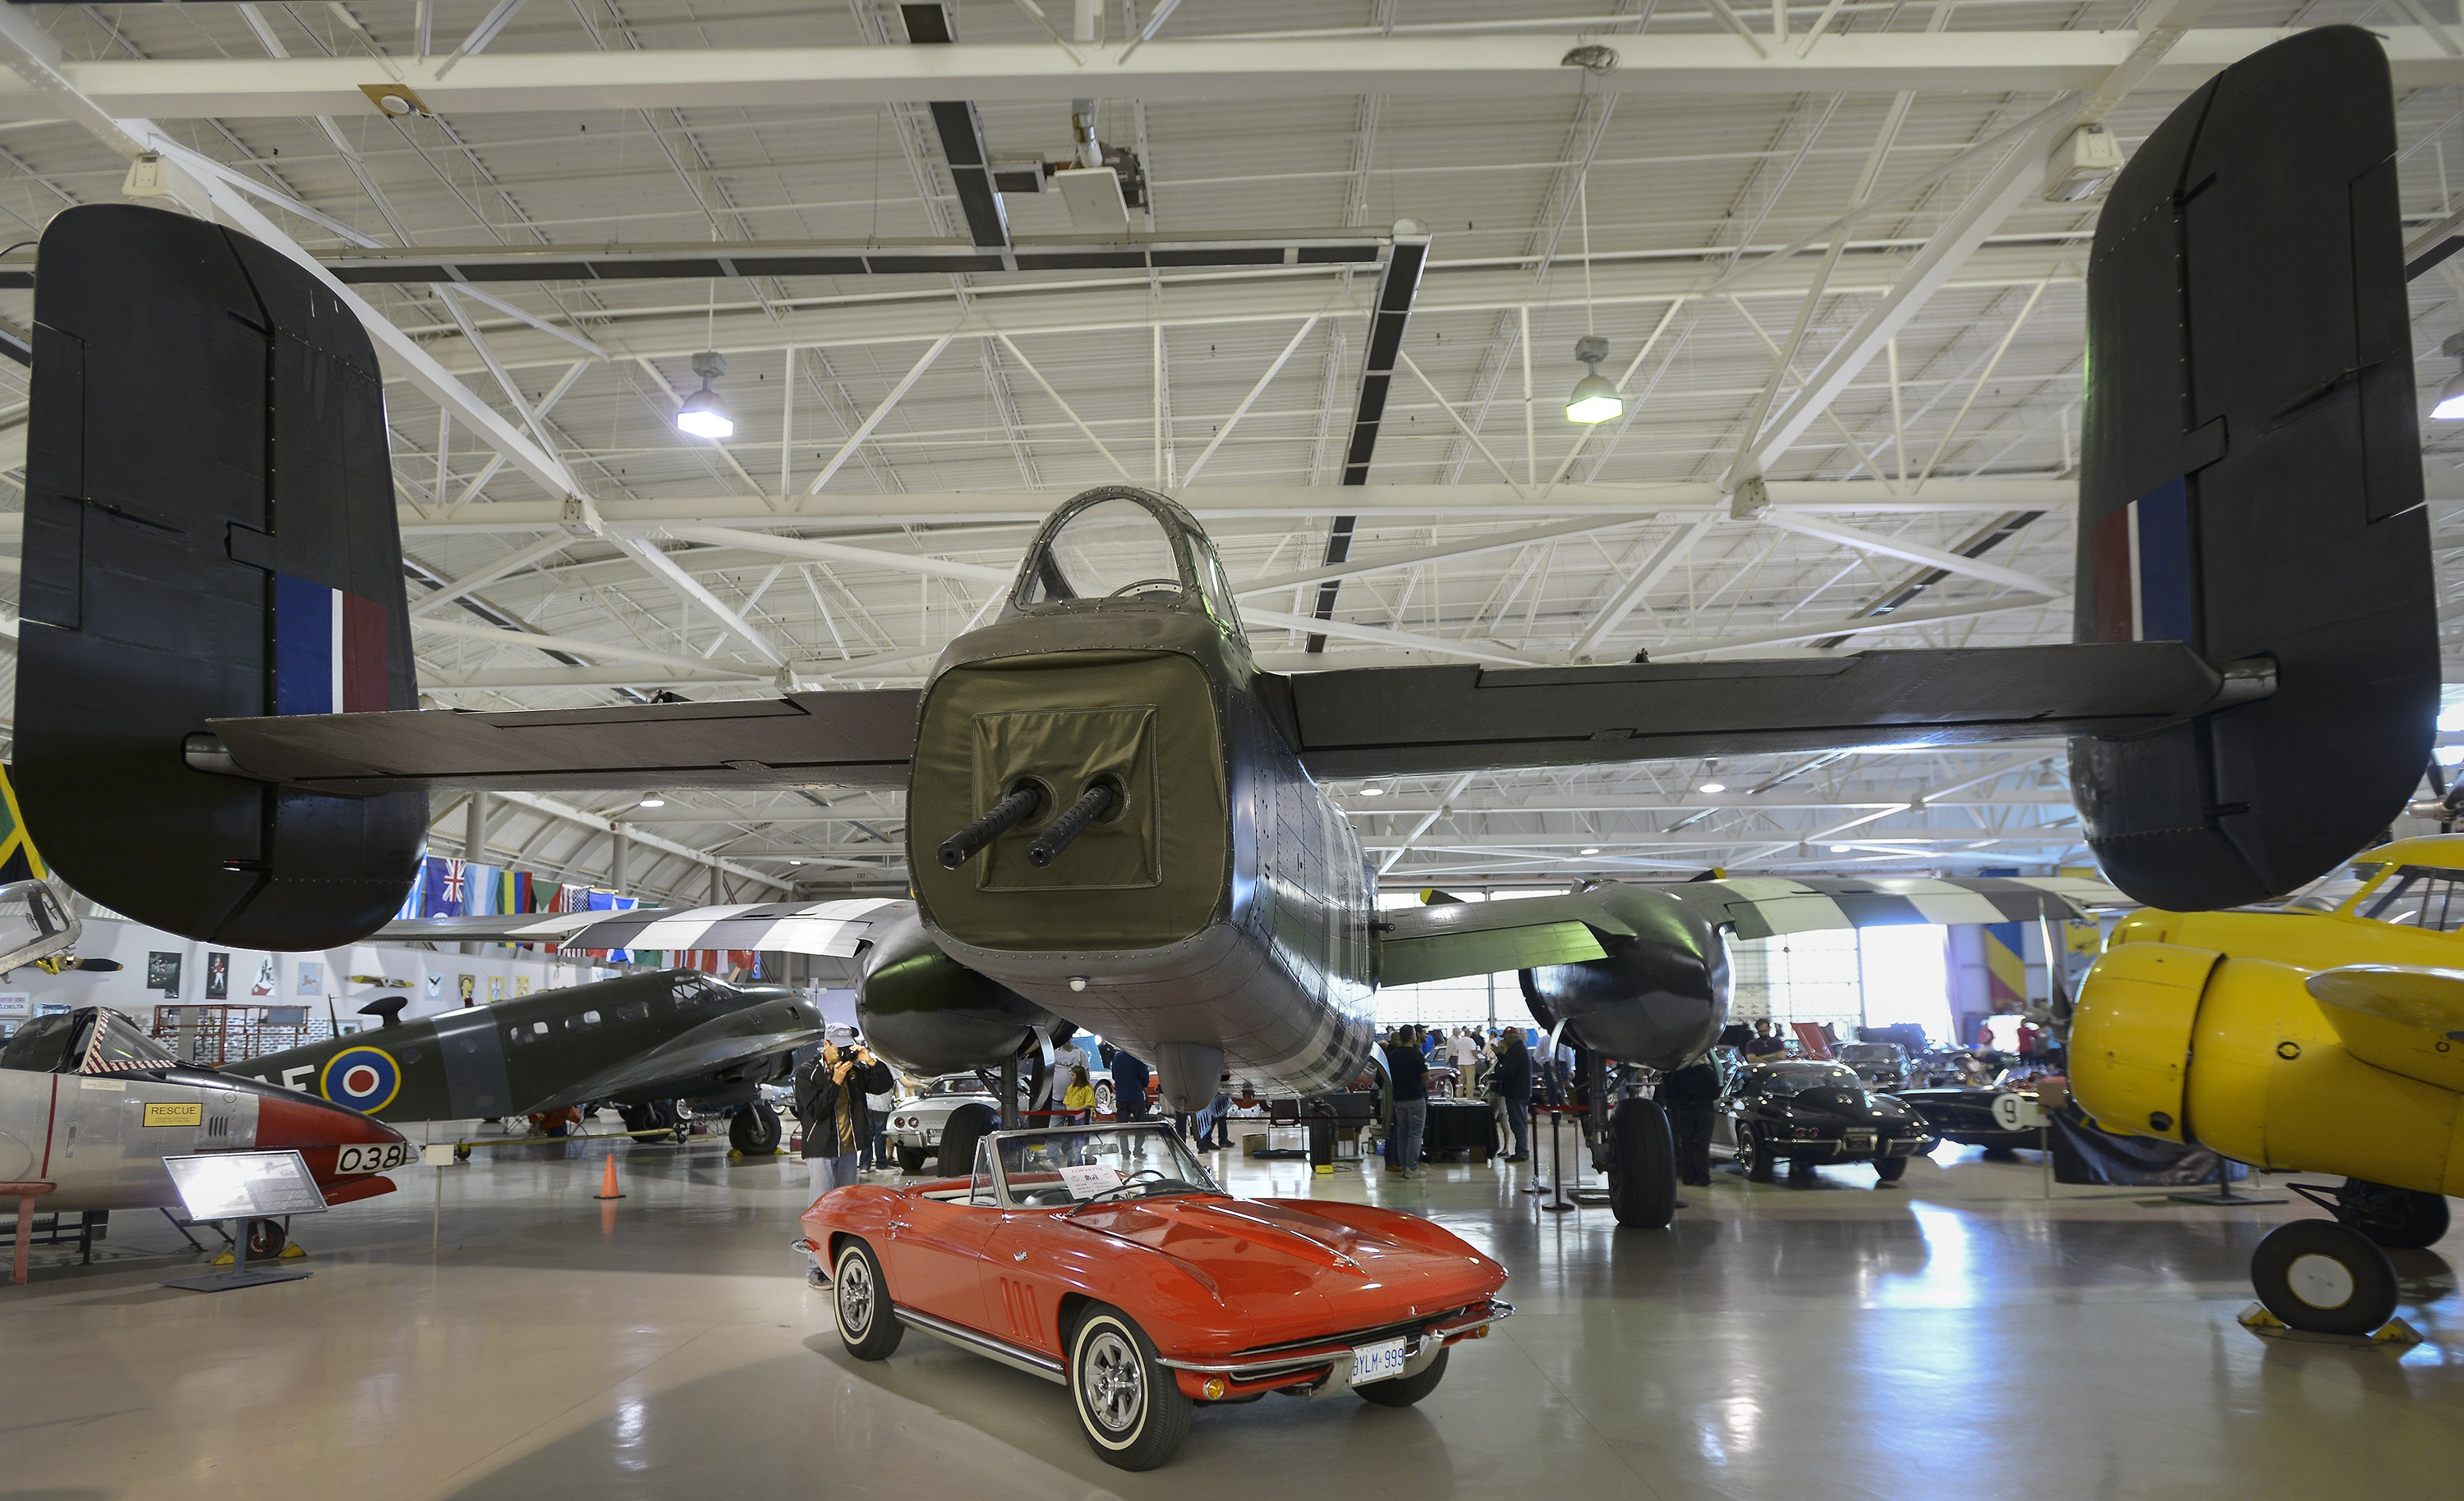 A Corvette owner photographs a 1965 Sportsman Corvette beneath the tail of a B2J Mitchell Bomber, one of 164 that flew with the RCAF between 1944-62, during the National Corvette Resorers Society 2016 Regional Judging Meet at the Canadian Warplane Heritage Museum Saturday.  The event is held in Canada every five years, the other four in the United States, and featured 66 Corvettes being judged on their originality and condition.  The Corvettes, some from as far away as West Virginia and Pennsylvania, had to be at least 15 years old to be entered.  John Rennison The Hamilton Spectator 9/24/16